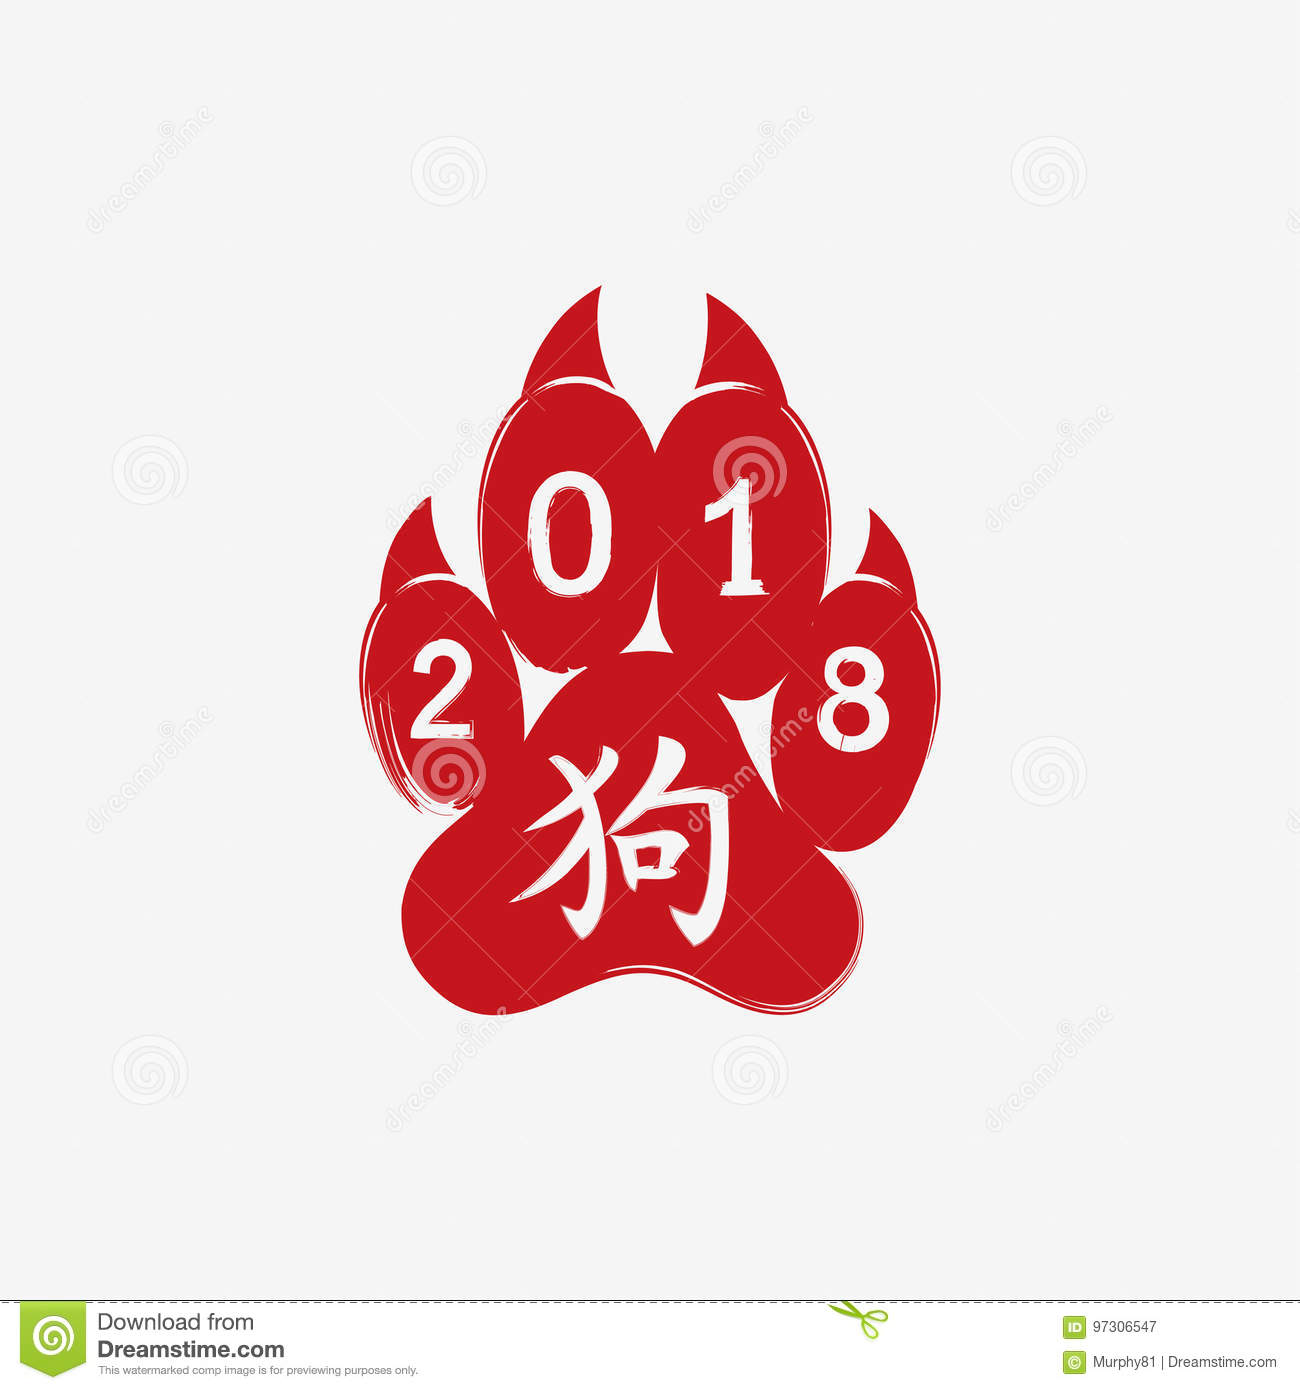 2018 Year Of The Dog Contains Chinese Character For A Dog